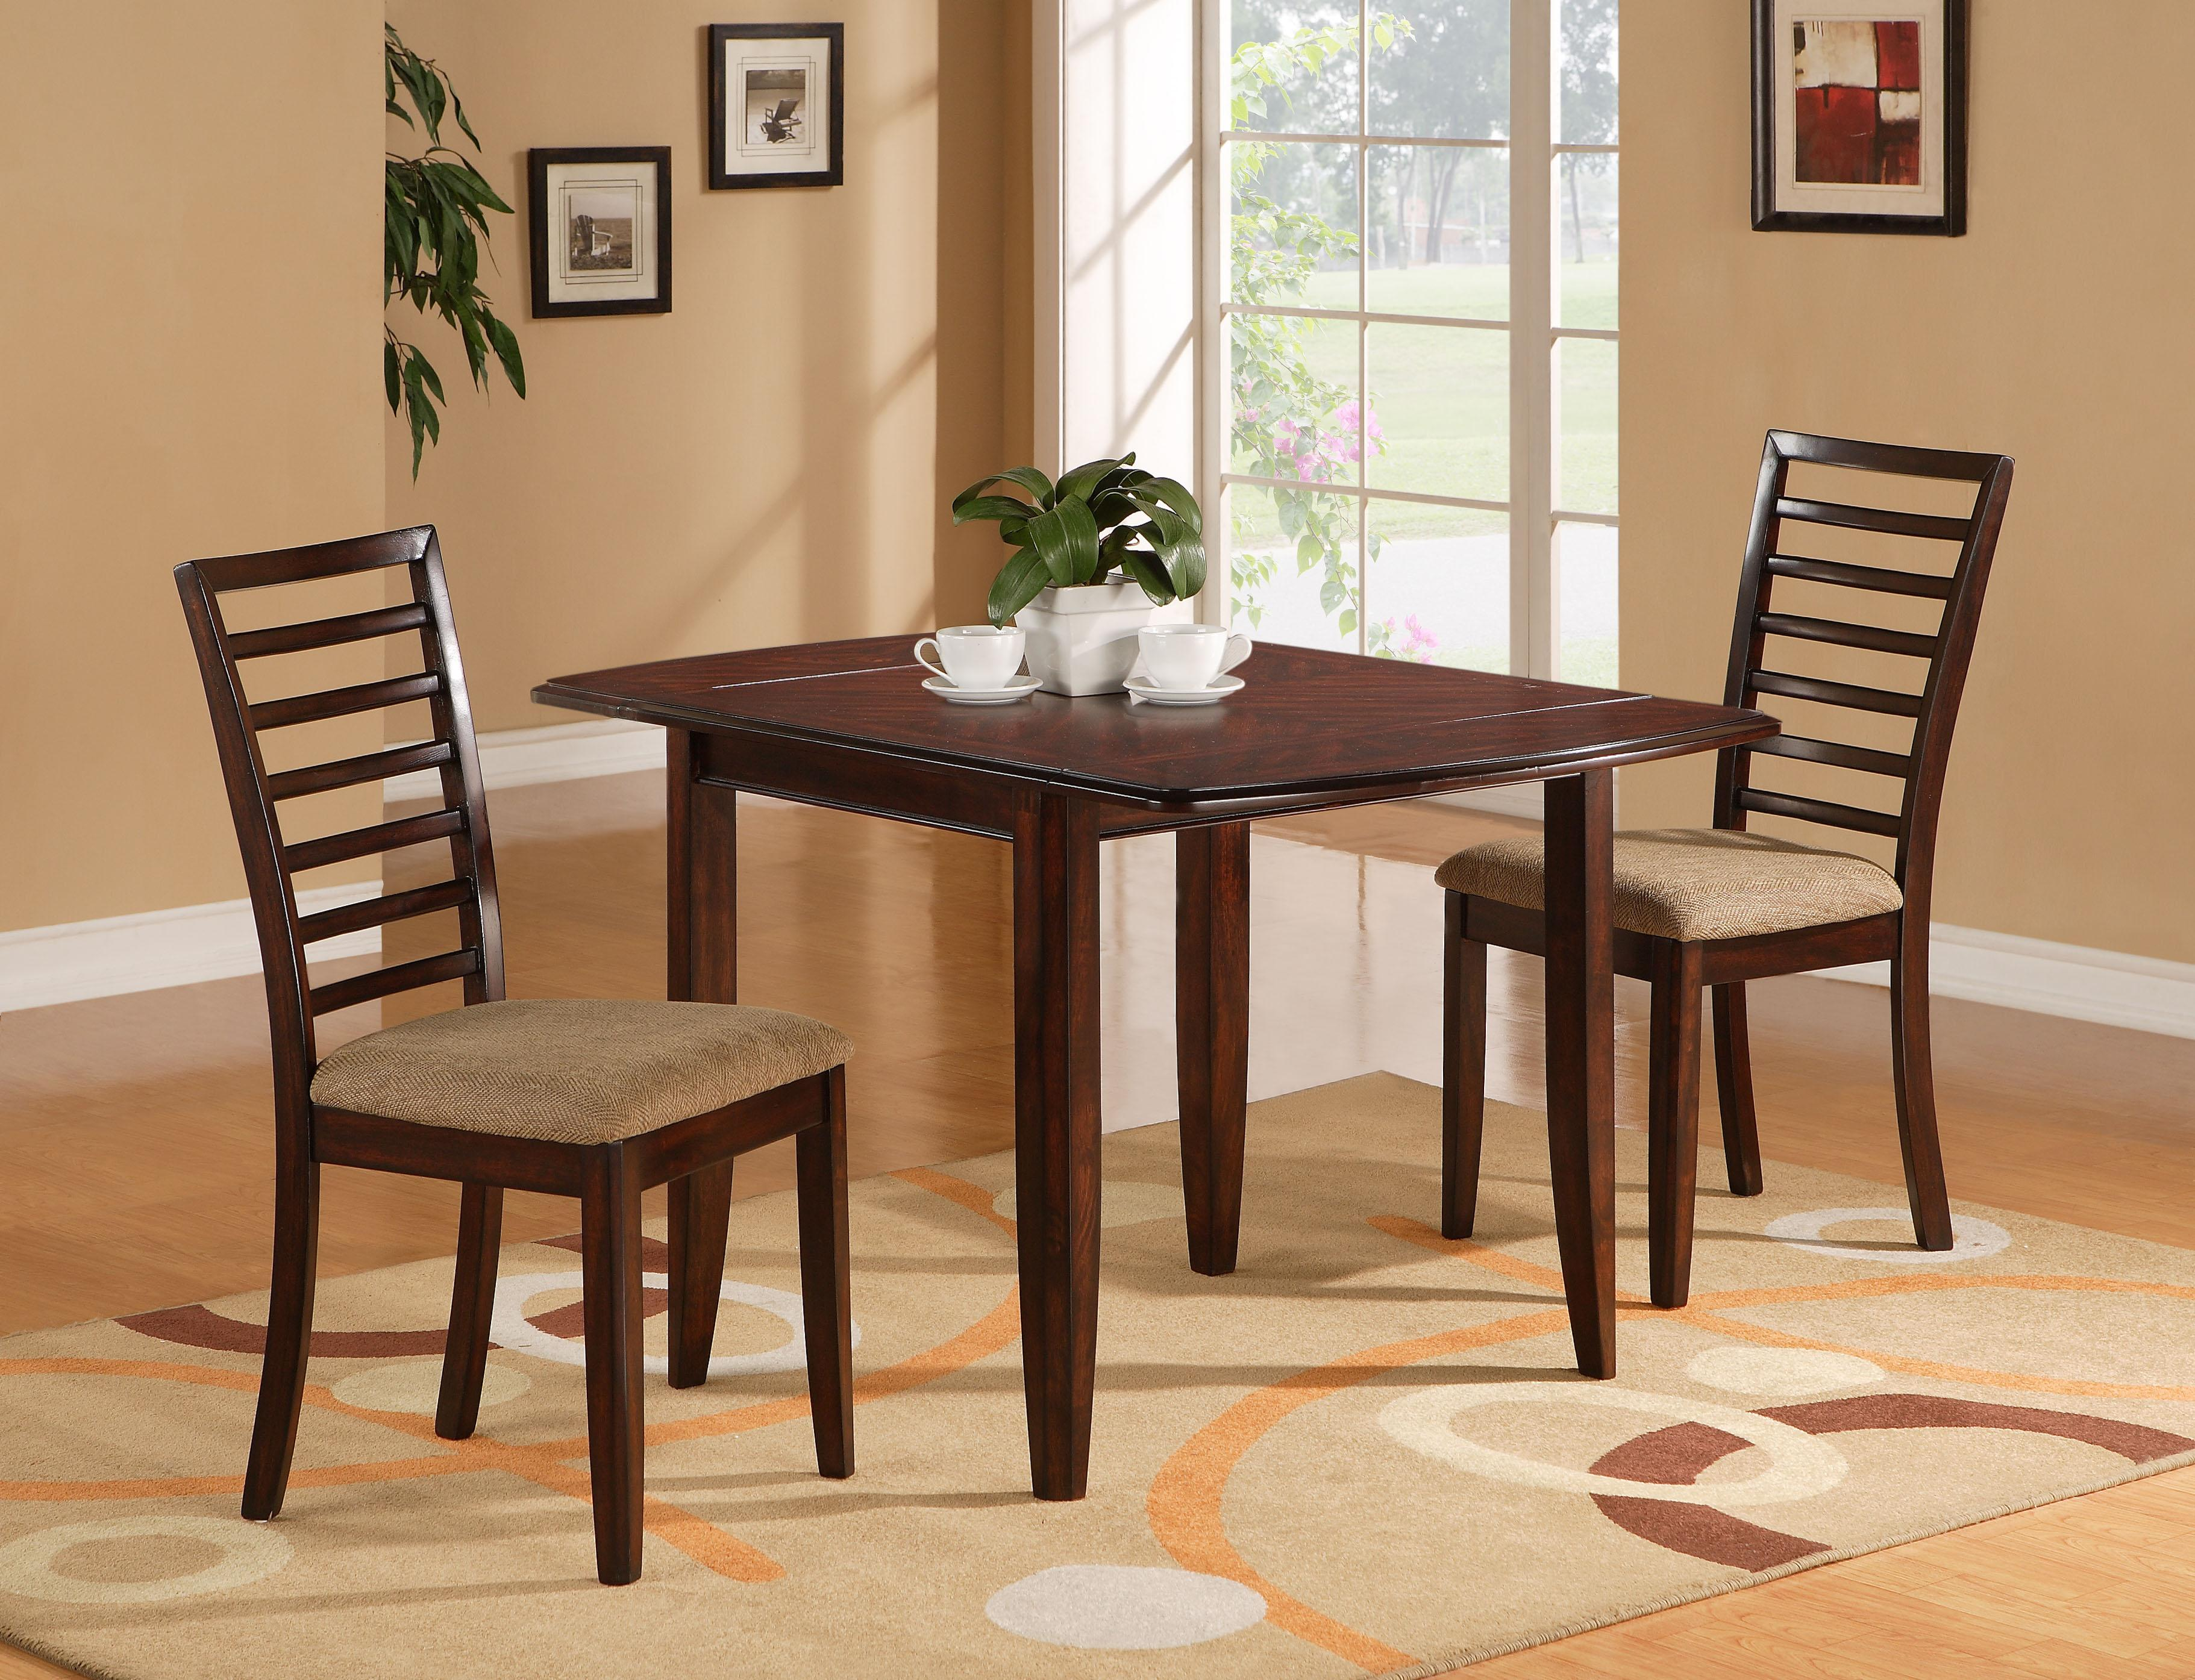 Holland House Ivan Ivan Table + 2 Chairs & Table and Chair Sets | Spokane Kennewick Tri-Cities Wenatchee ...